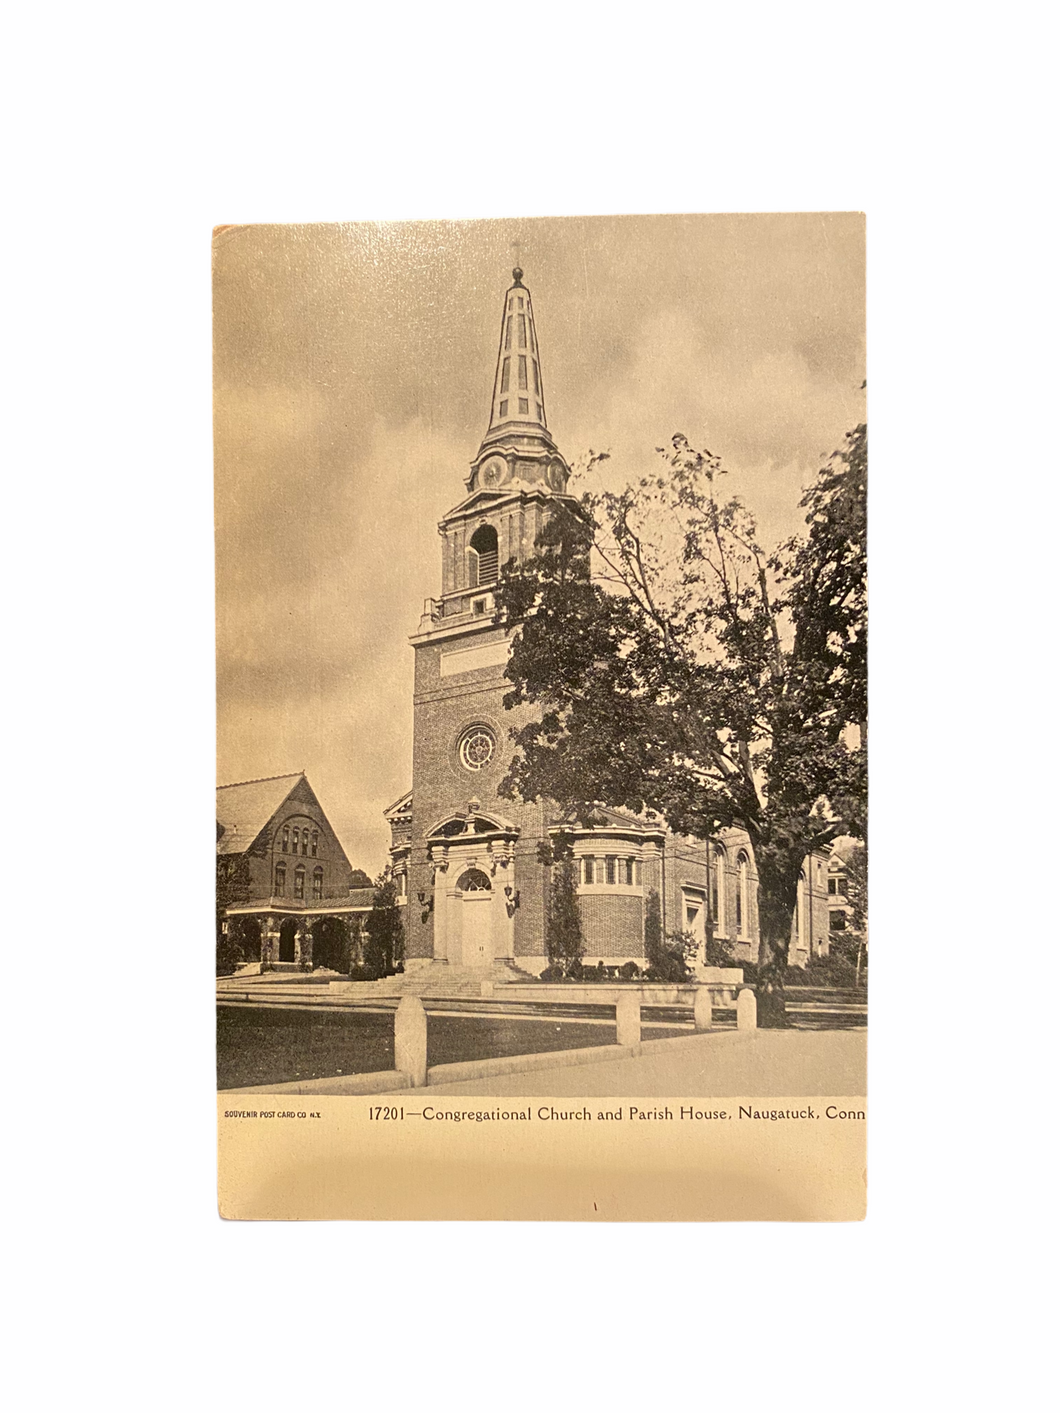 Congregational Church and Parish House, Naugatuck, Connecticut Undivided Back Unused Postcard Circa 1901-1907